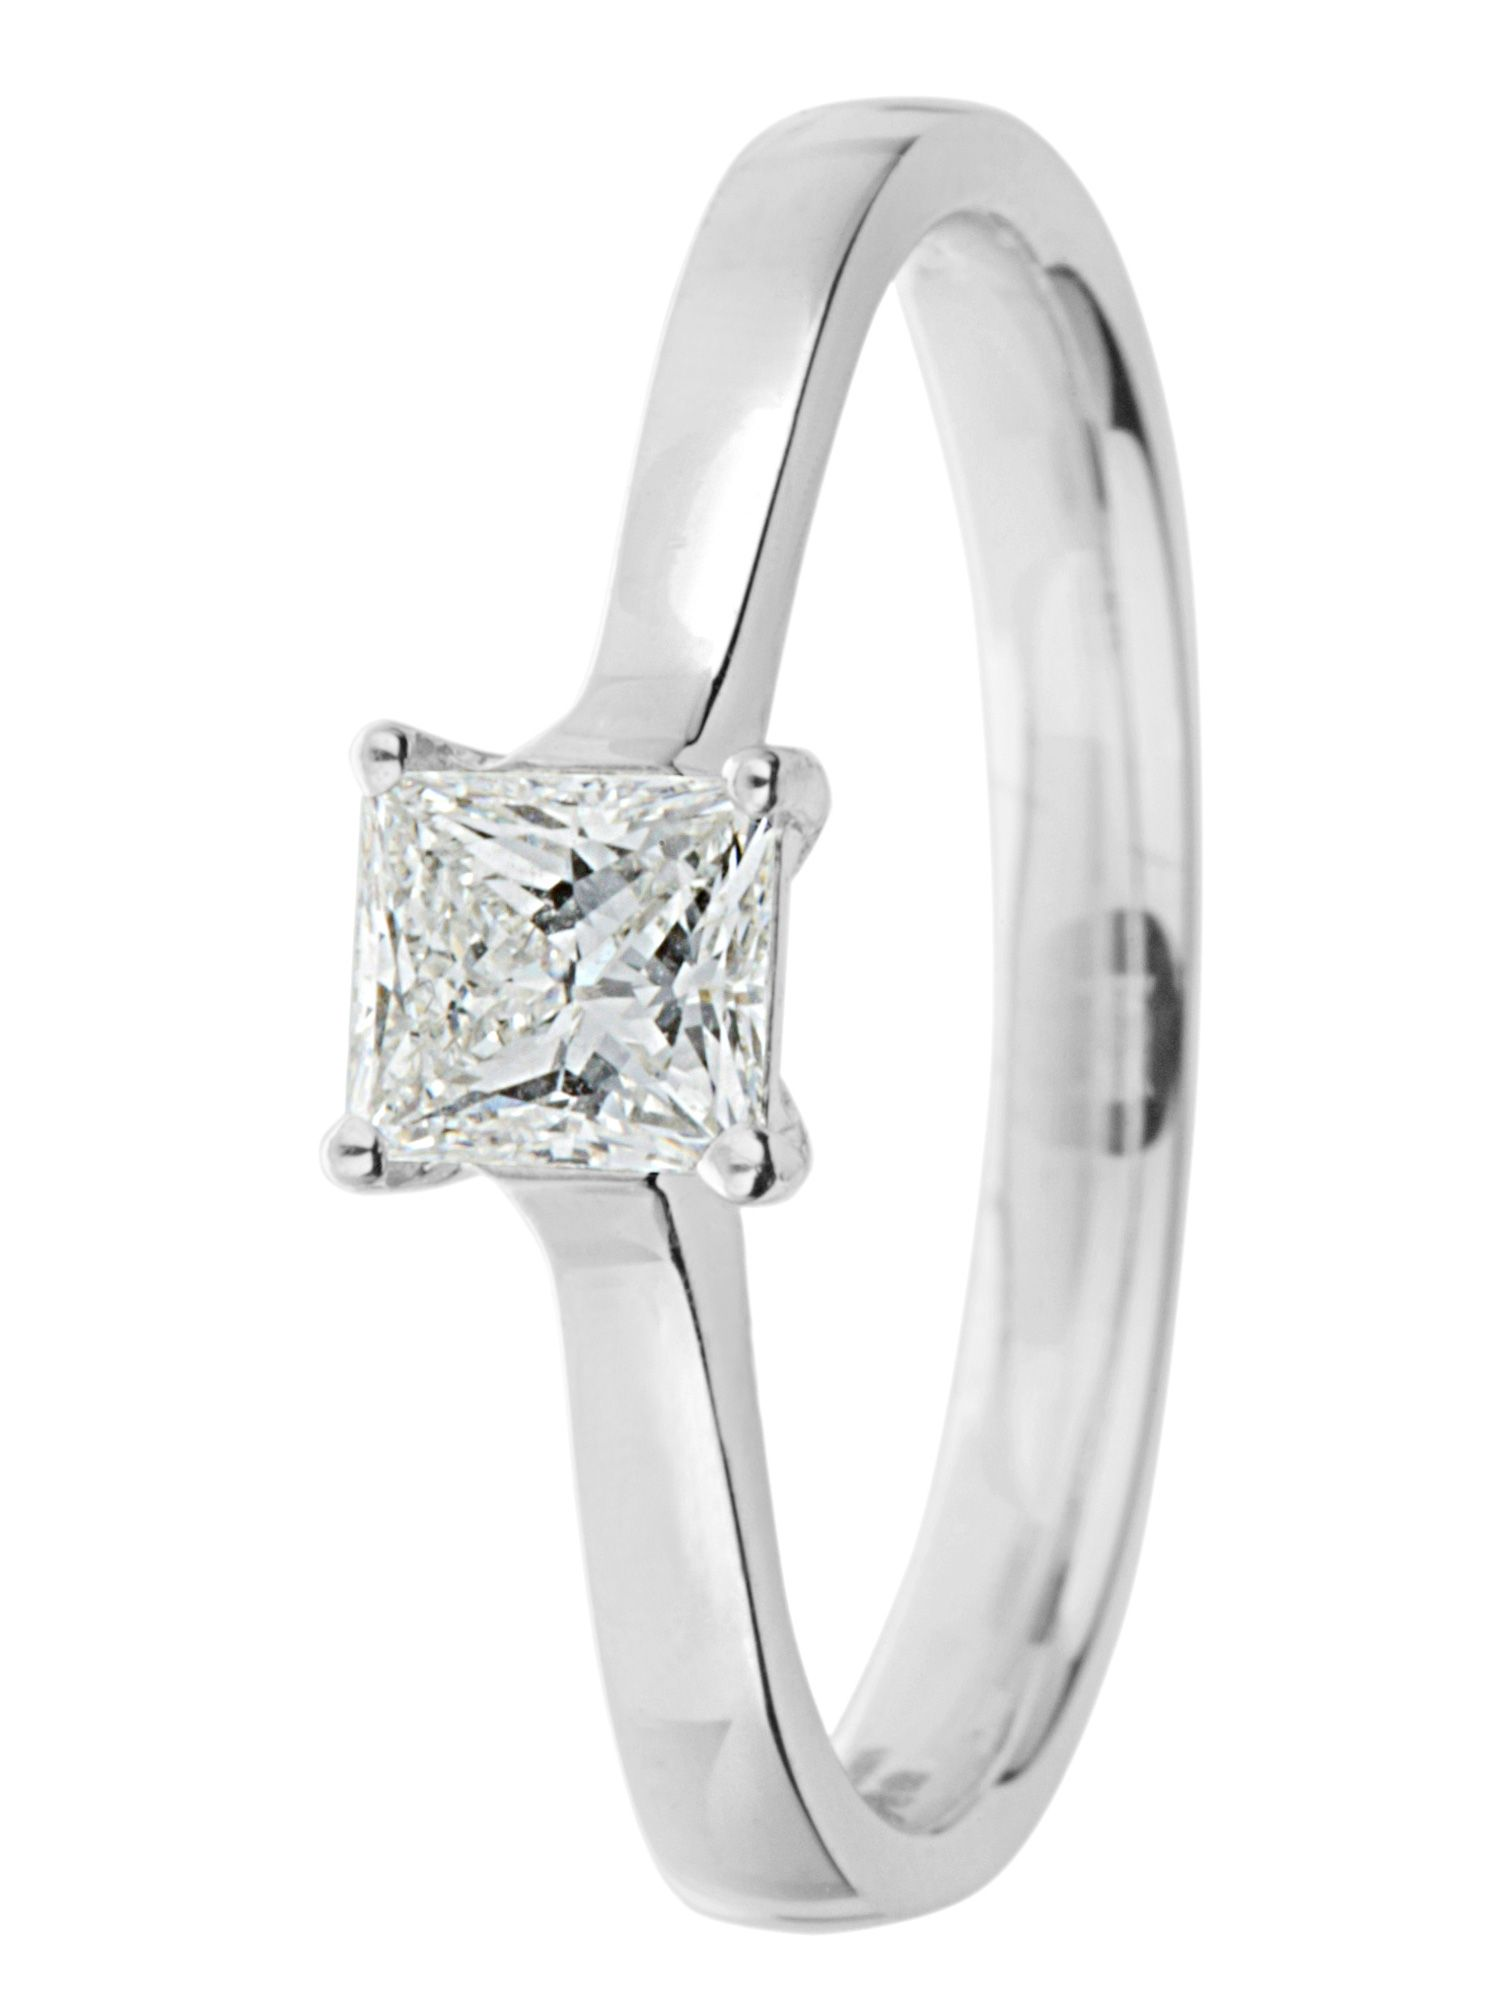 Ardesco platinum 0.50ct diamond solitaire